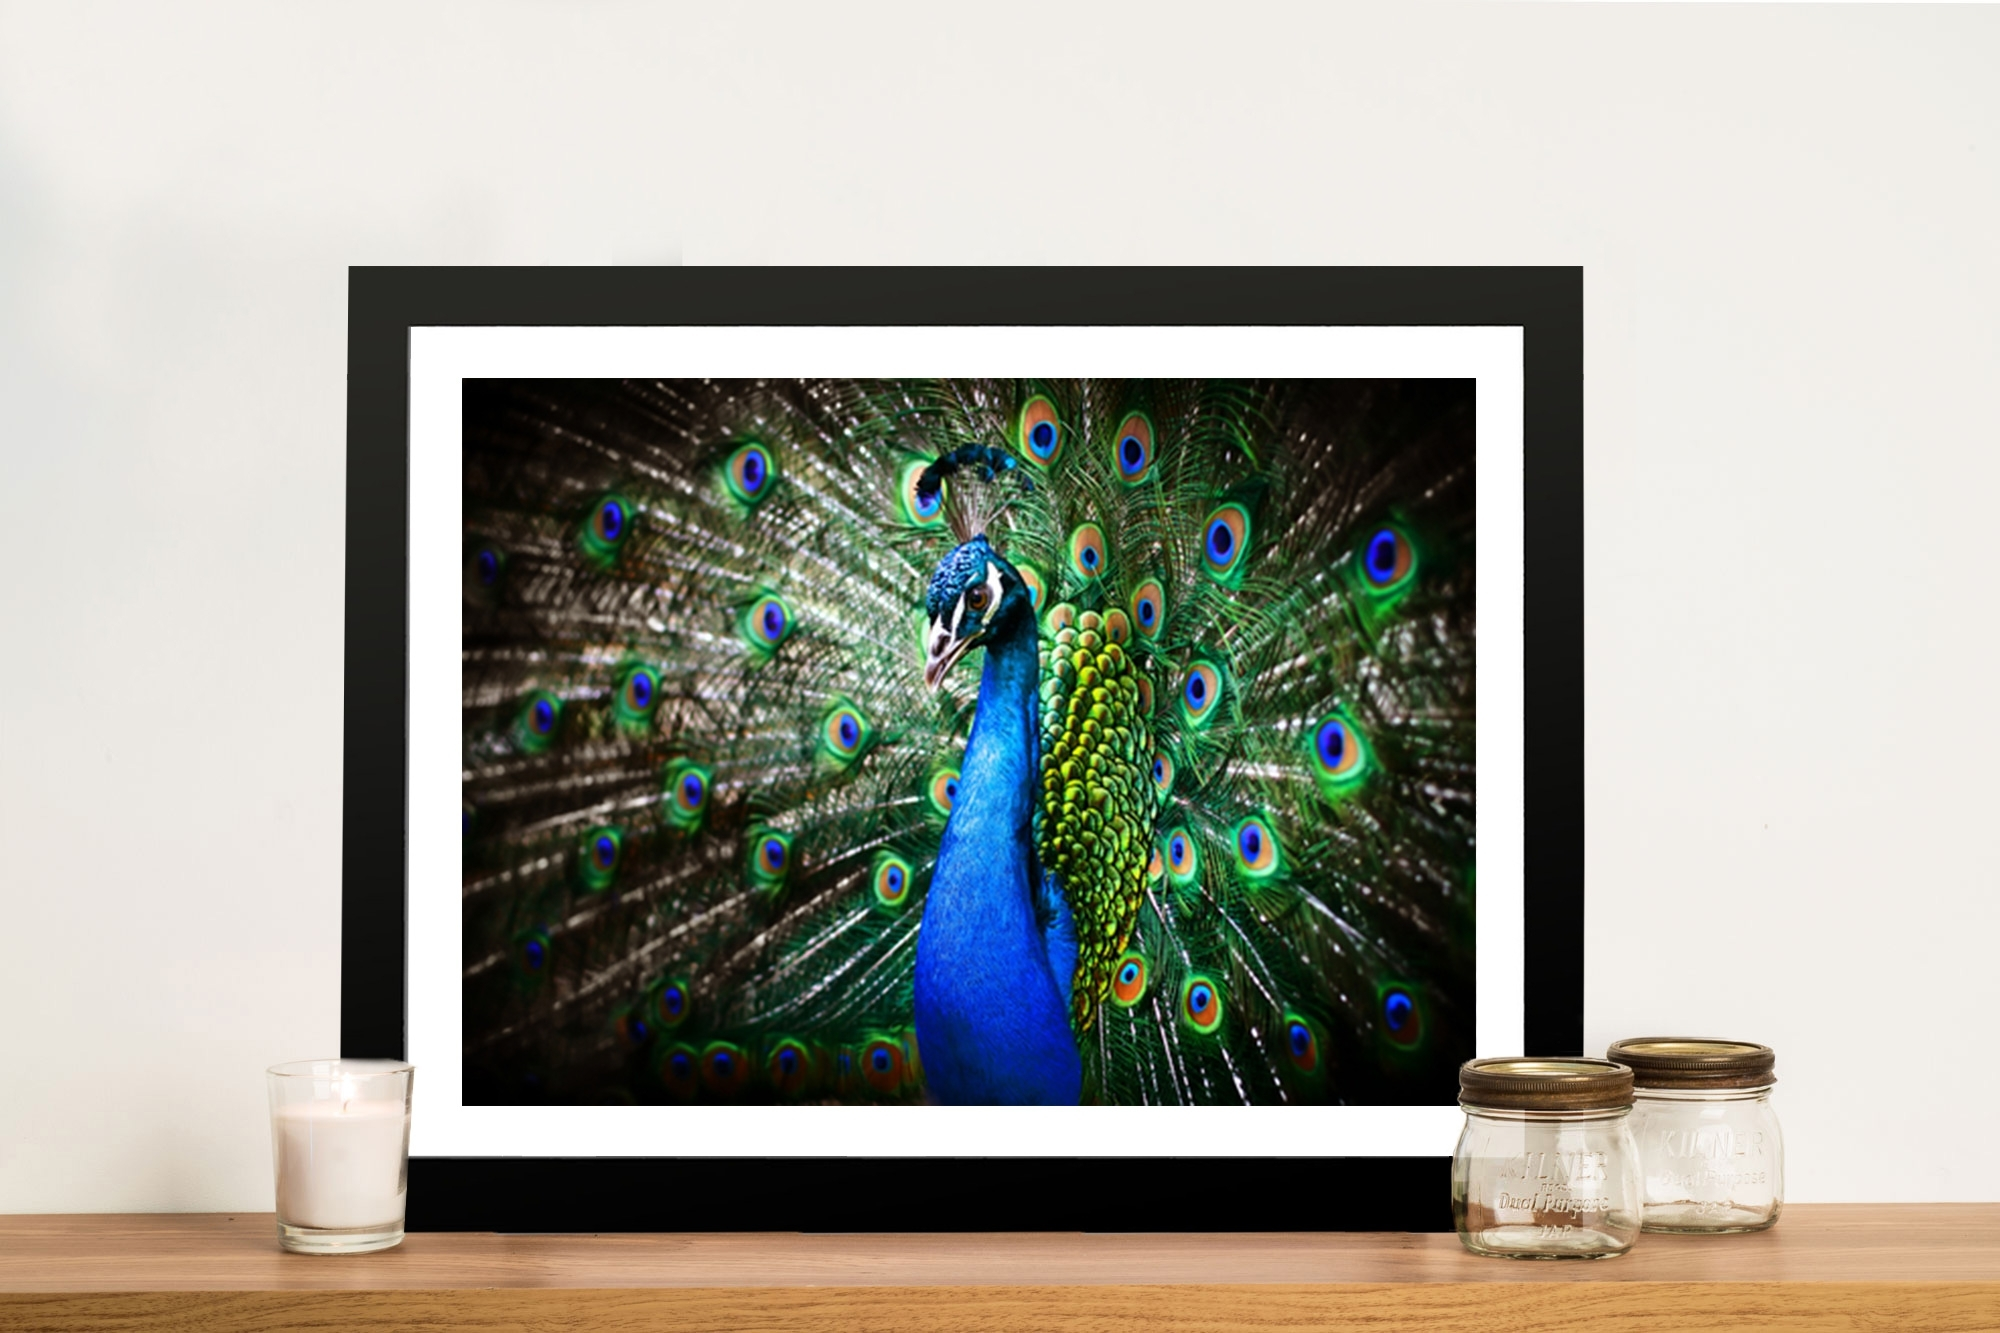 Amazing Peacock Framed Wall Art & Canvas Giclee Artwork Carlton Pertaining To Peacock Wall Art (View 19 of 20)